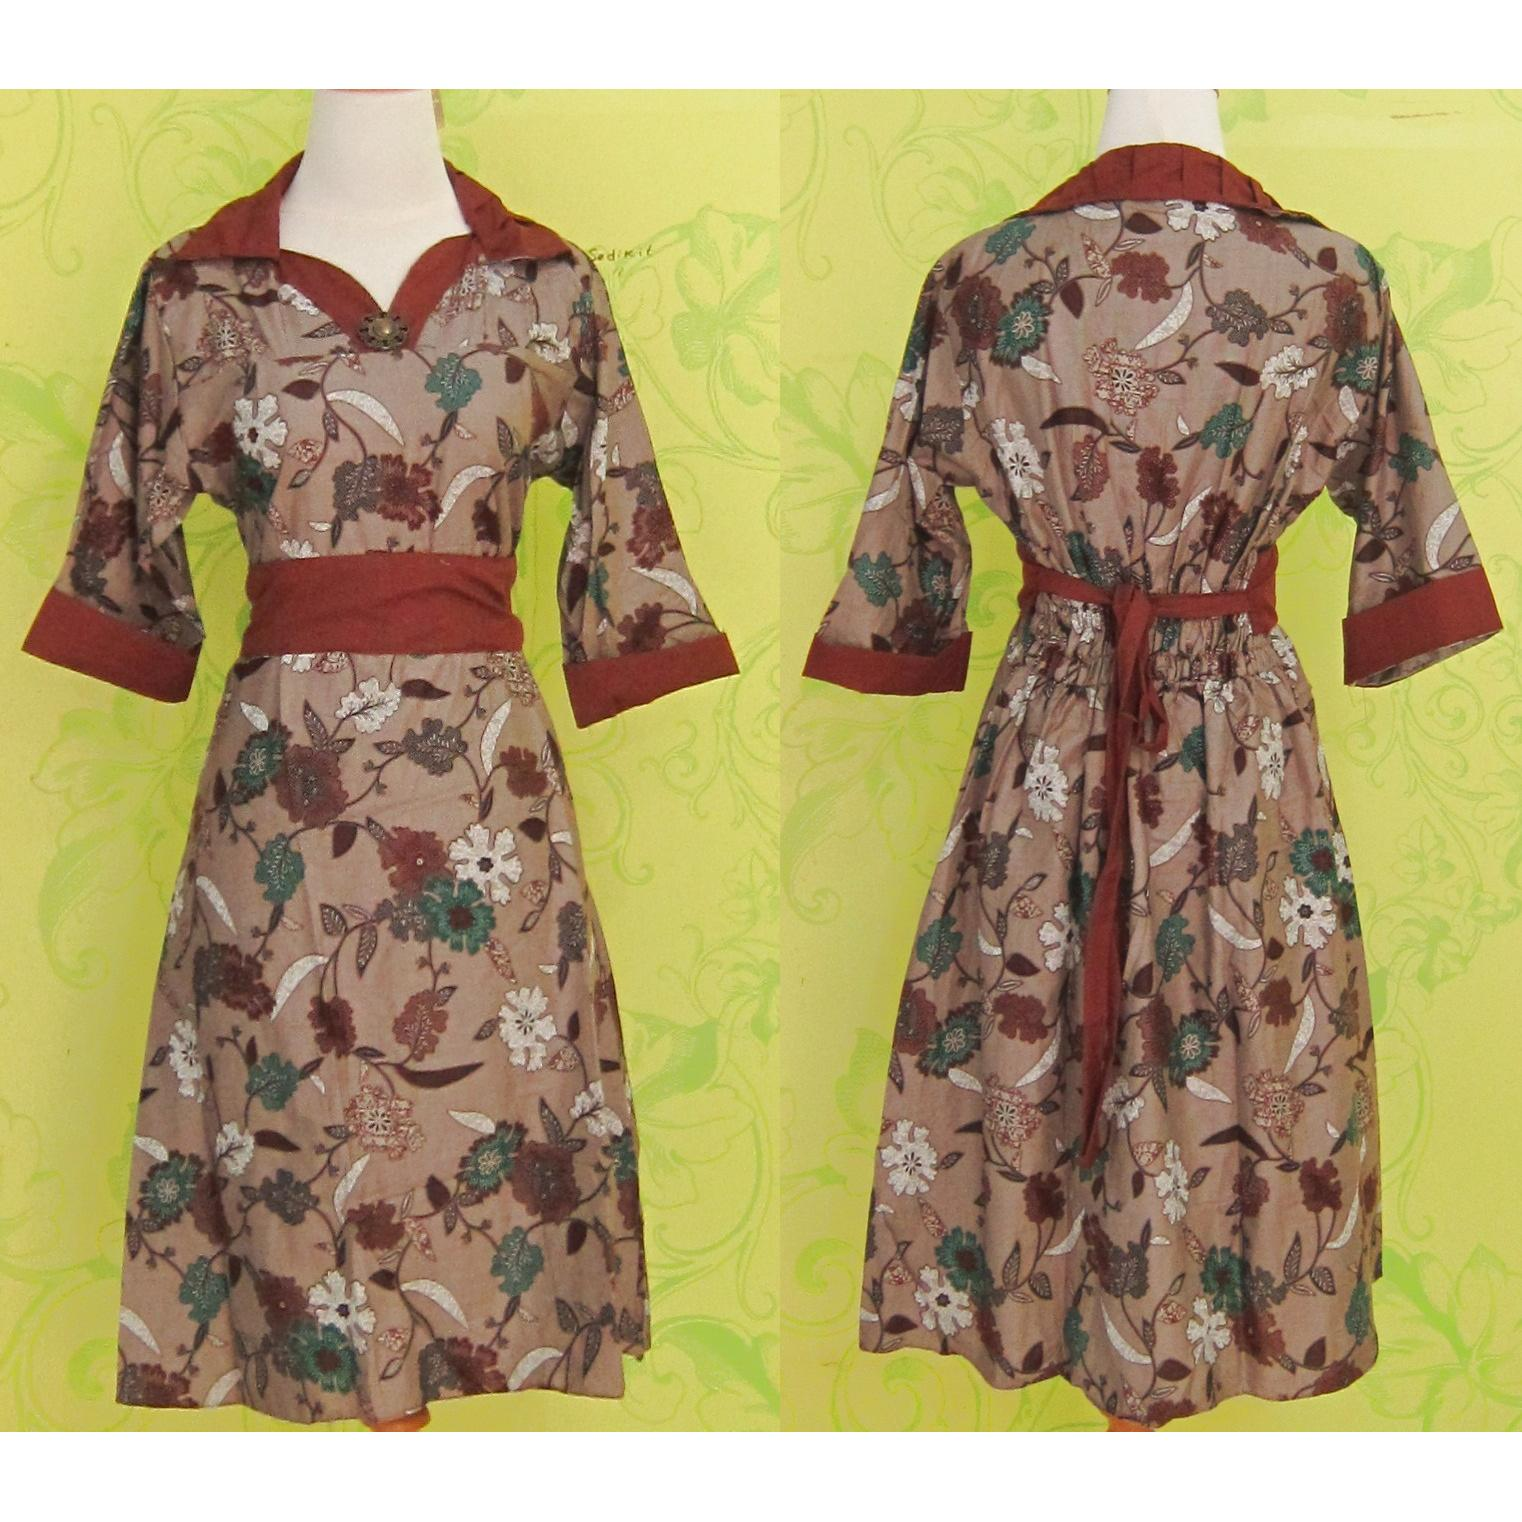 harga Dress Batik VIC COKLAT BUNGA elevenia.co.id